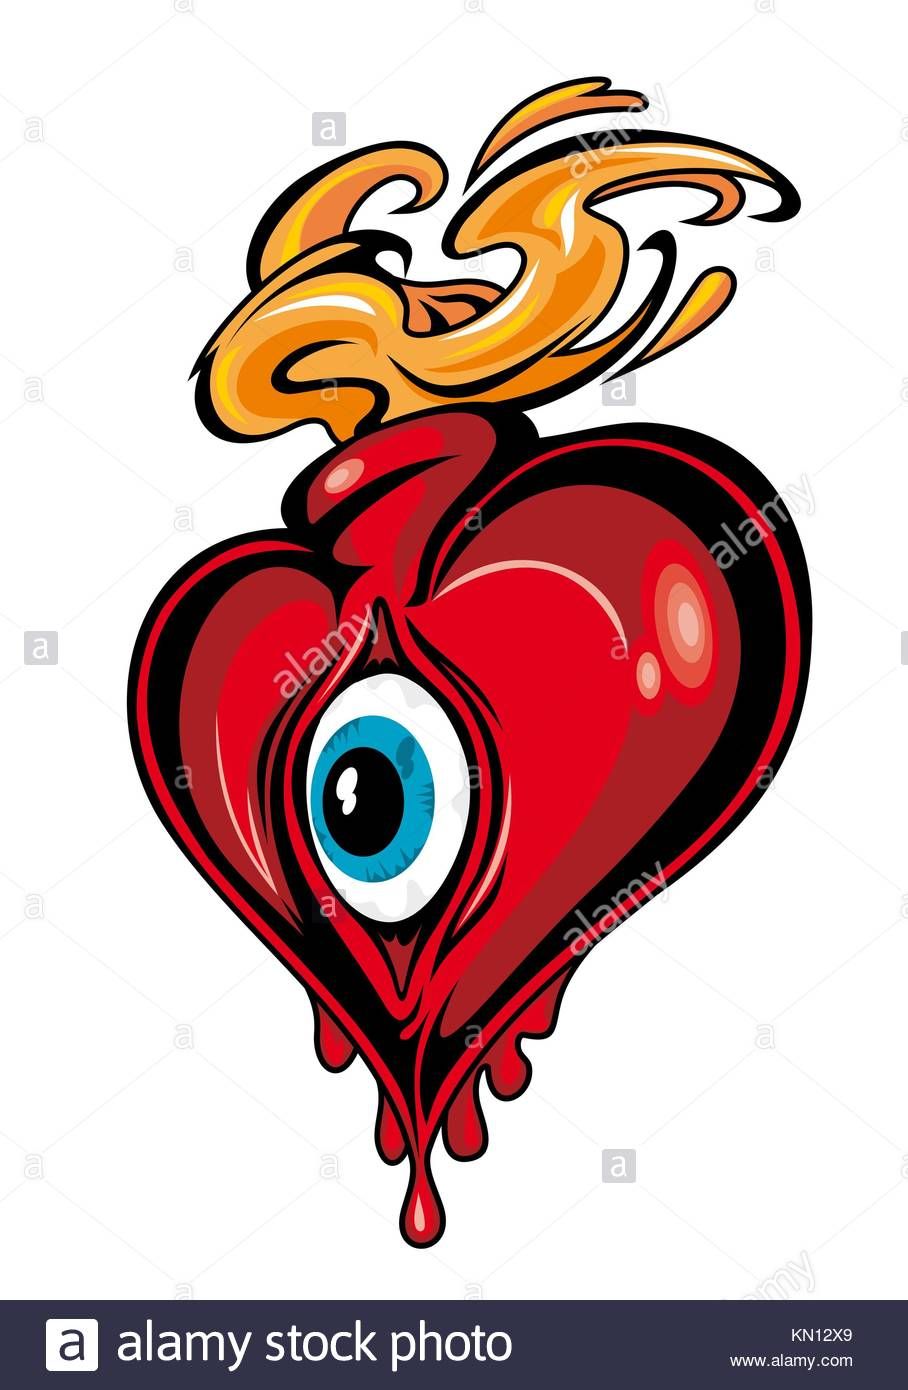 Red Heart With Eye For Tattoo Design